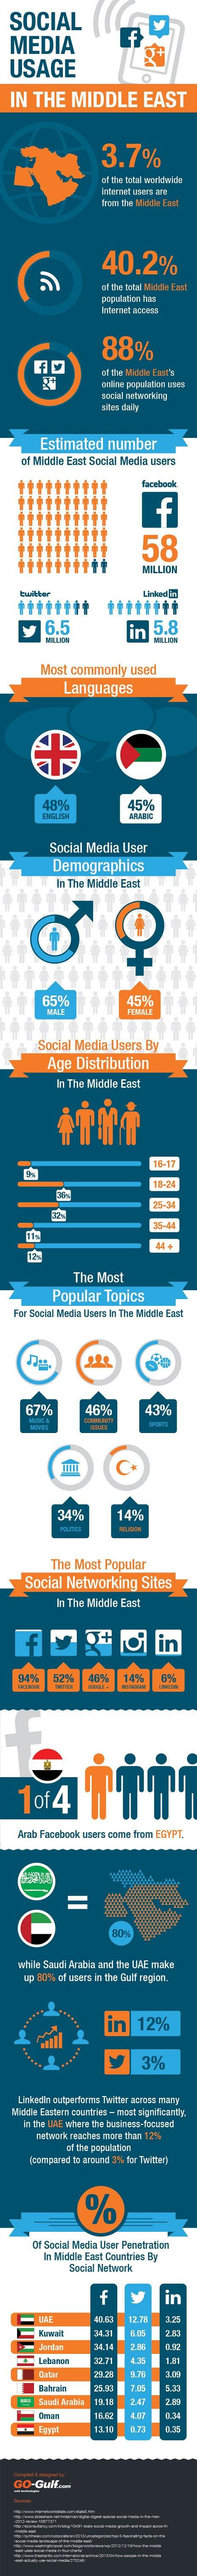 Social Media Usage in The Middle East